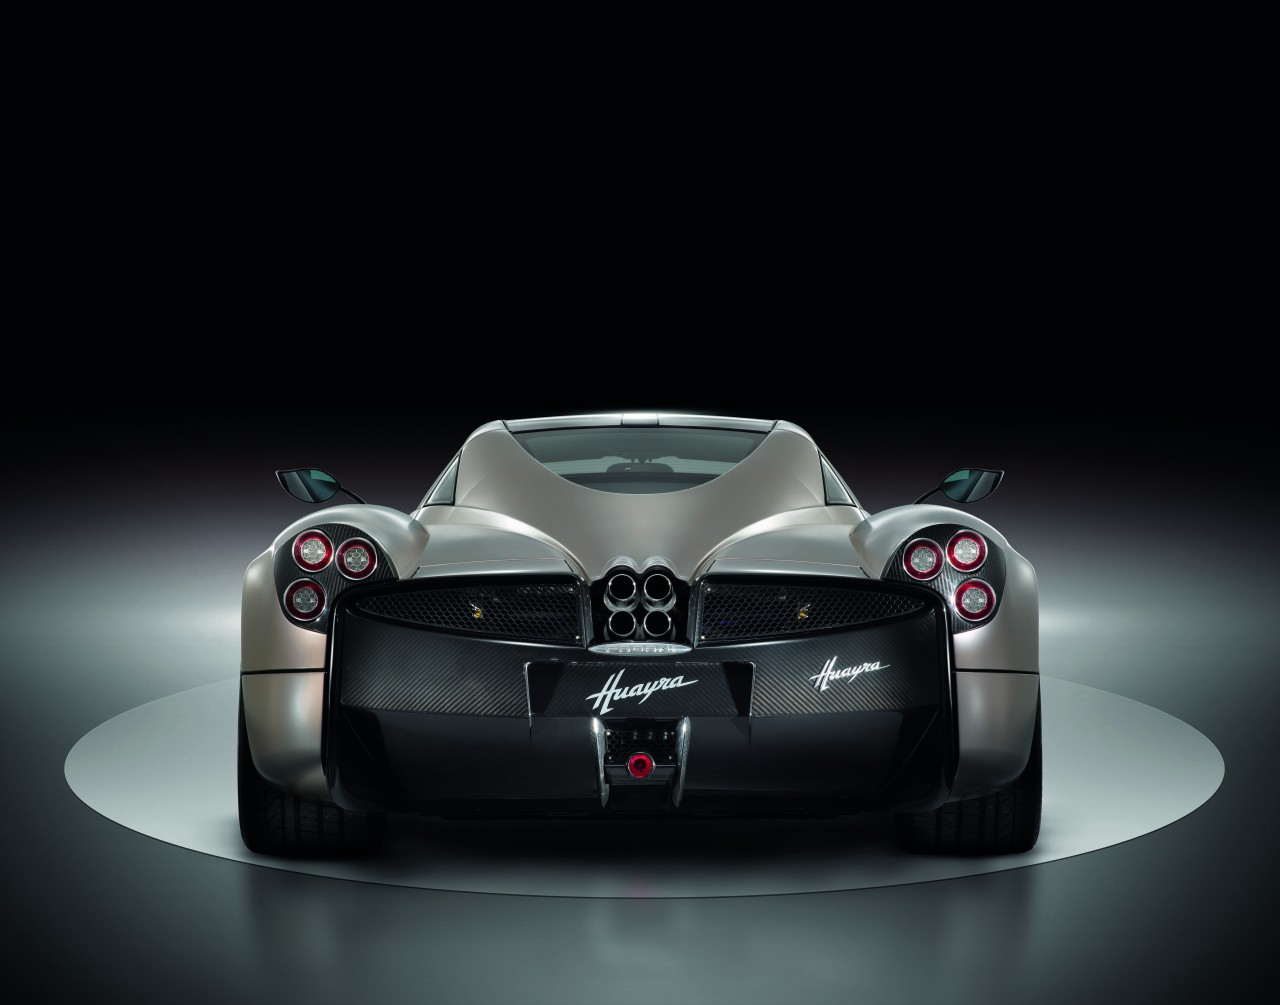 automobiles tout savoir sur les marques pagani huayra. Black Bedroom Furniture Sets. Home Design Ideas